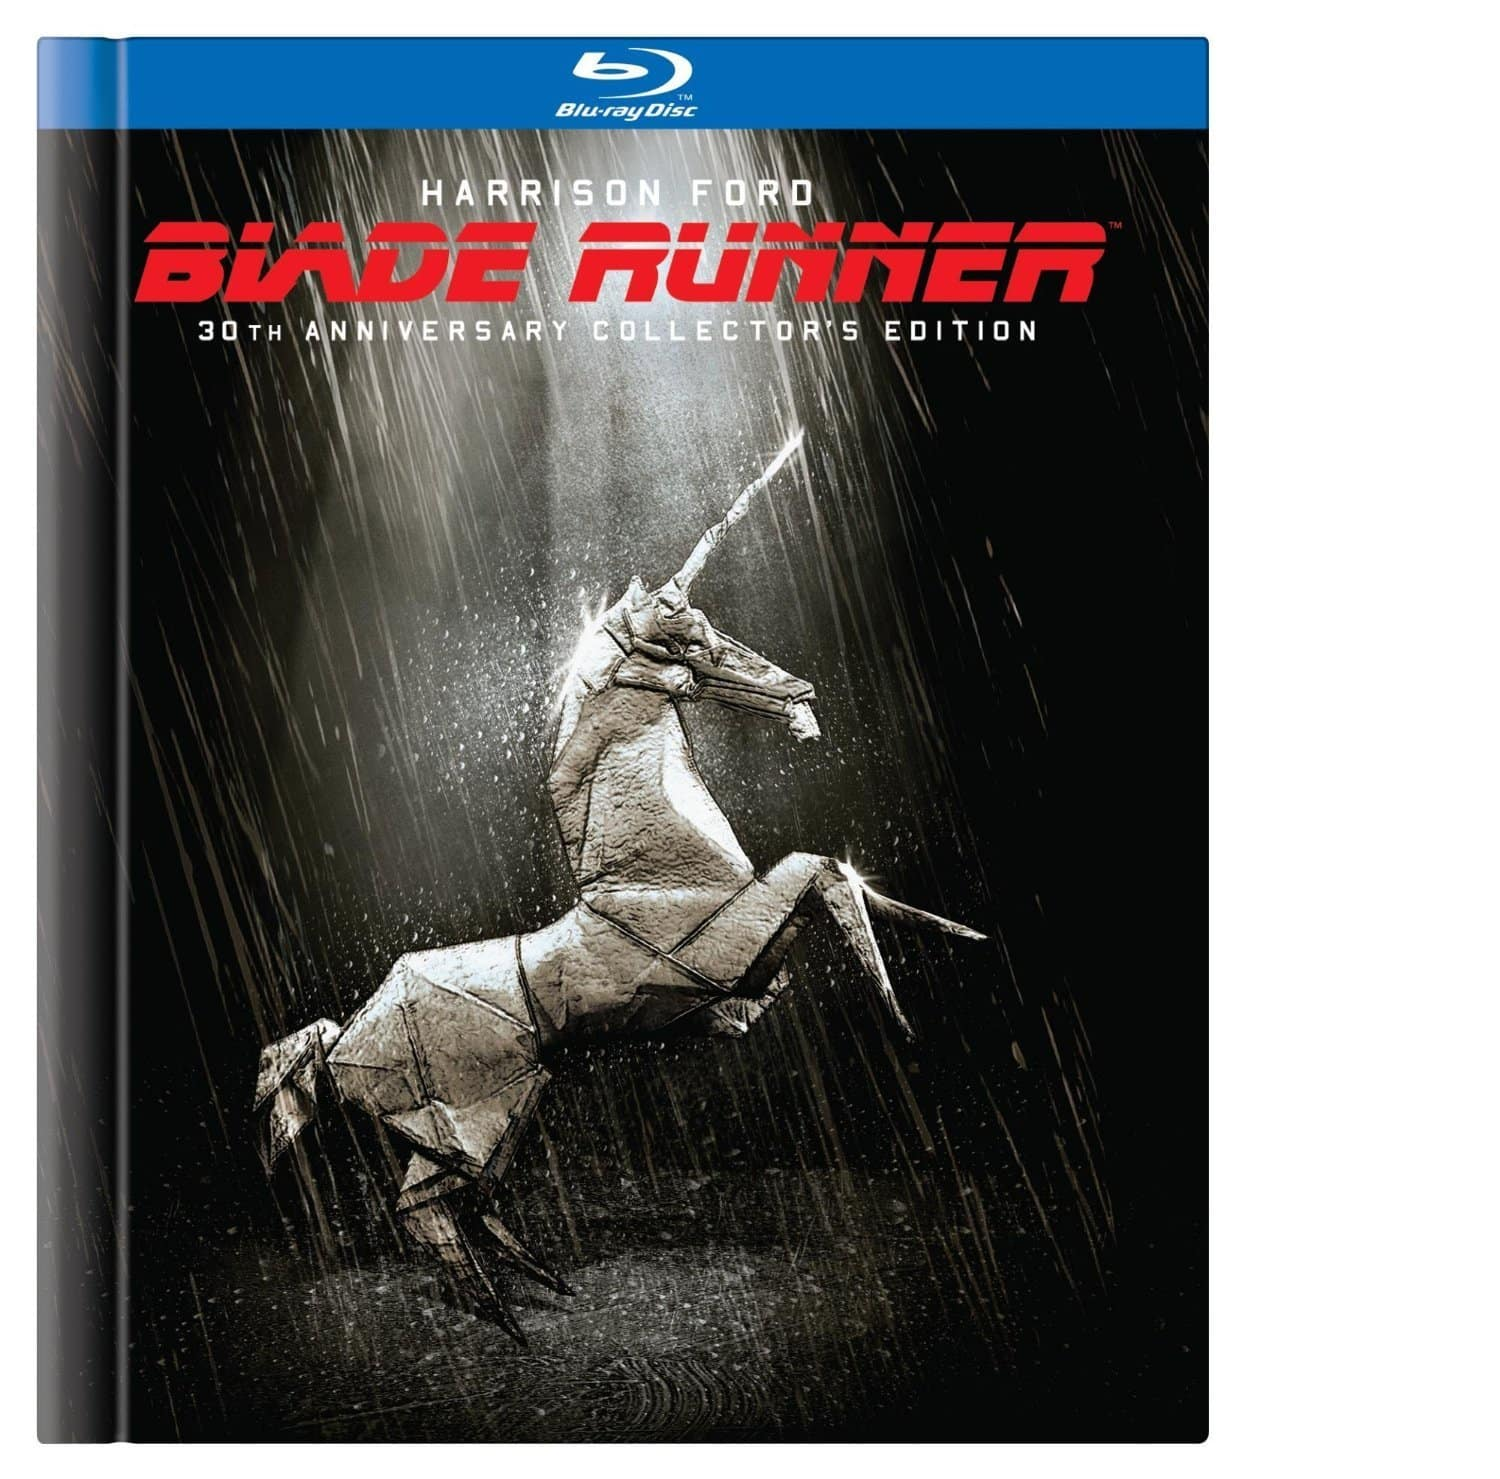 Blade Runner: 30th Anniversary Collector's Edition Digibook (Blu-ray) $9.99 + Free Store Pickup